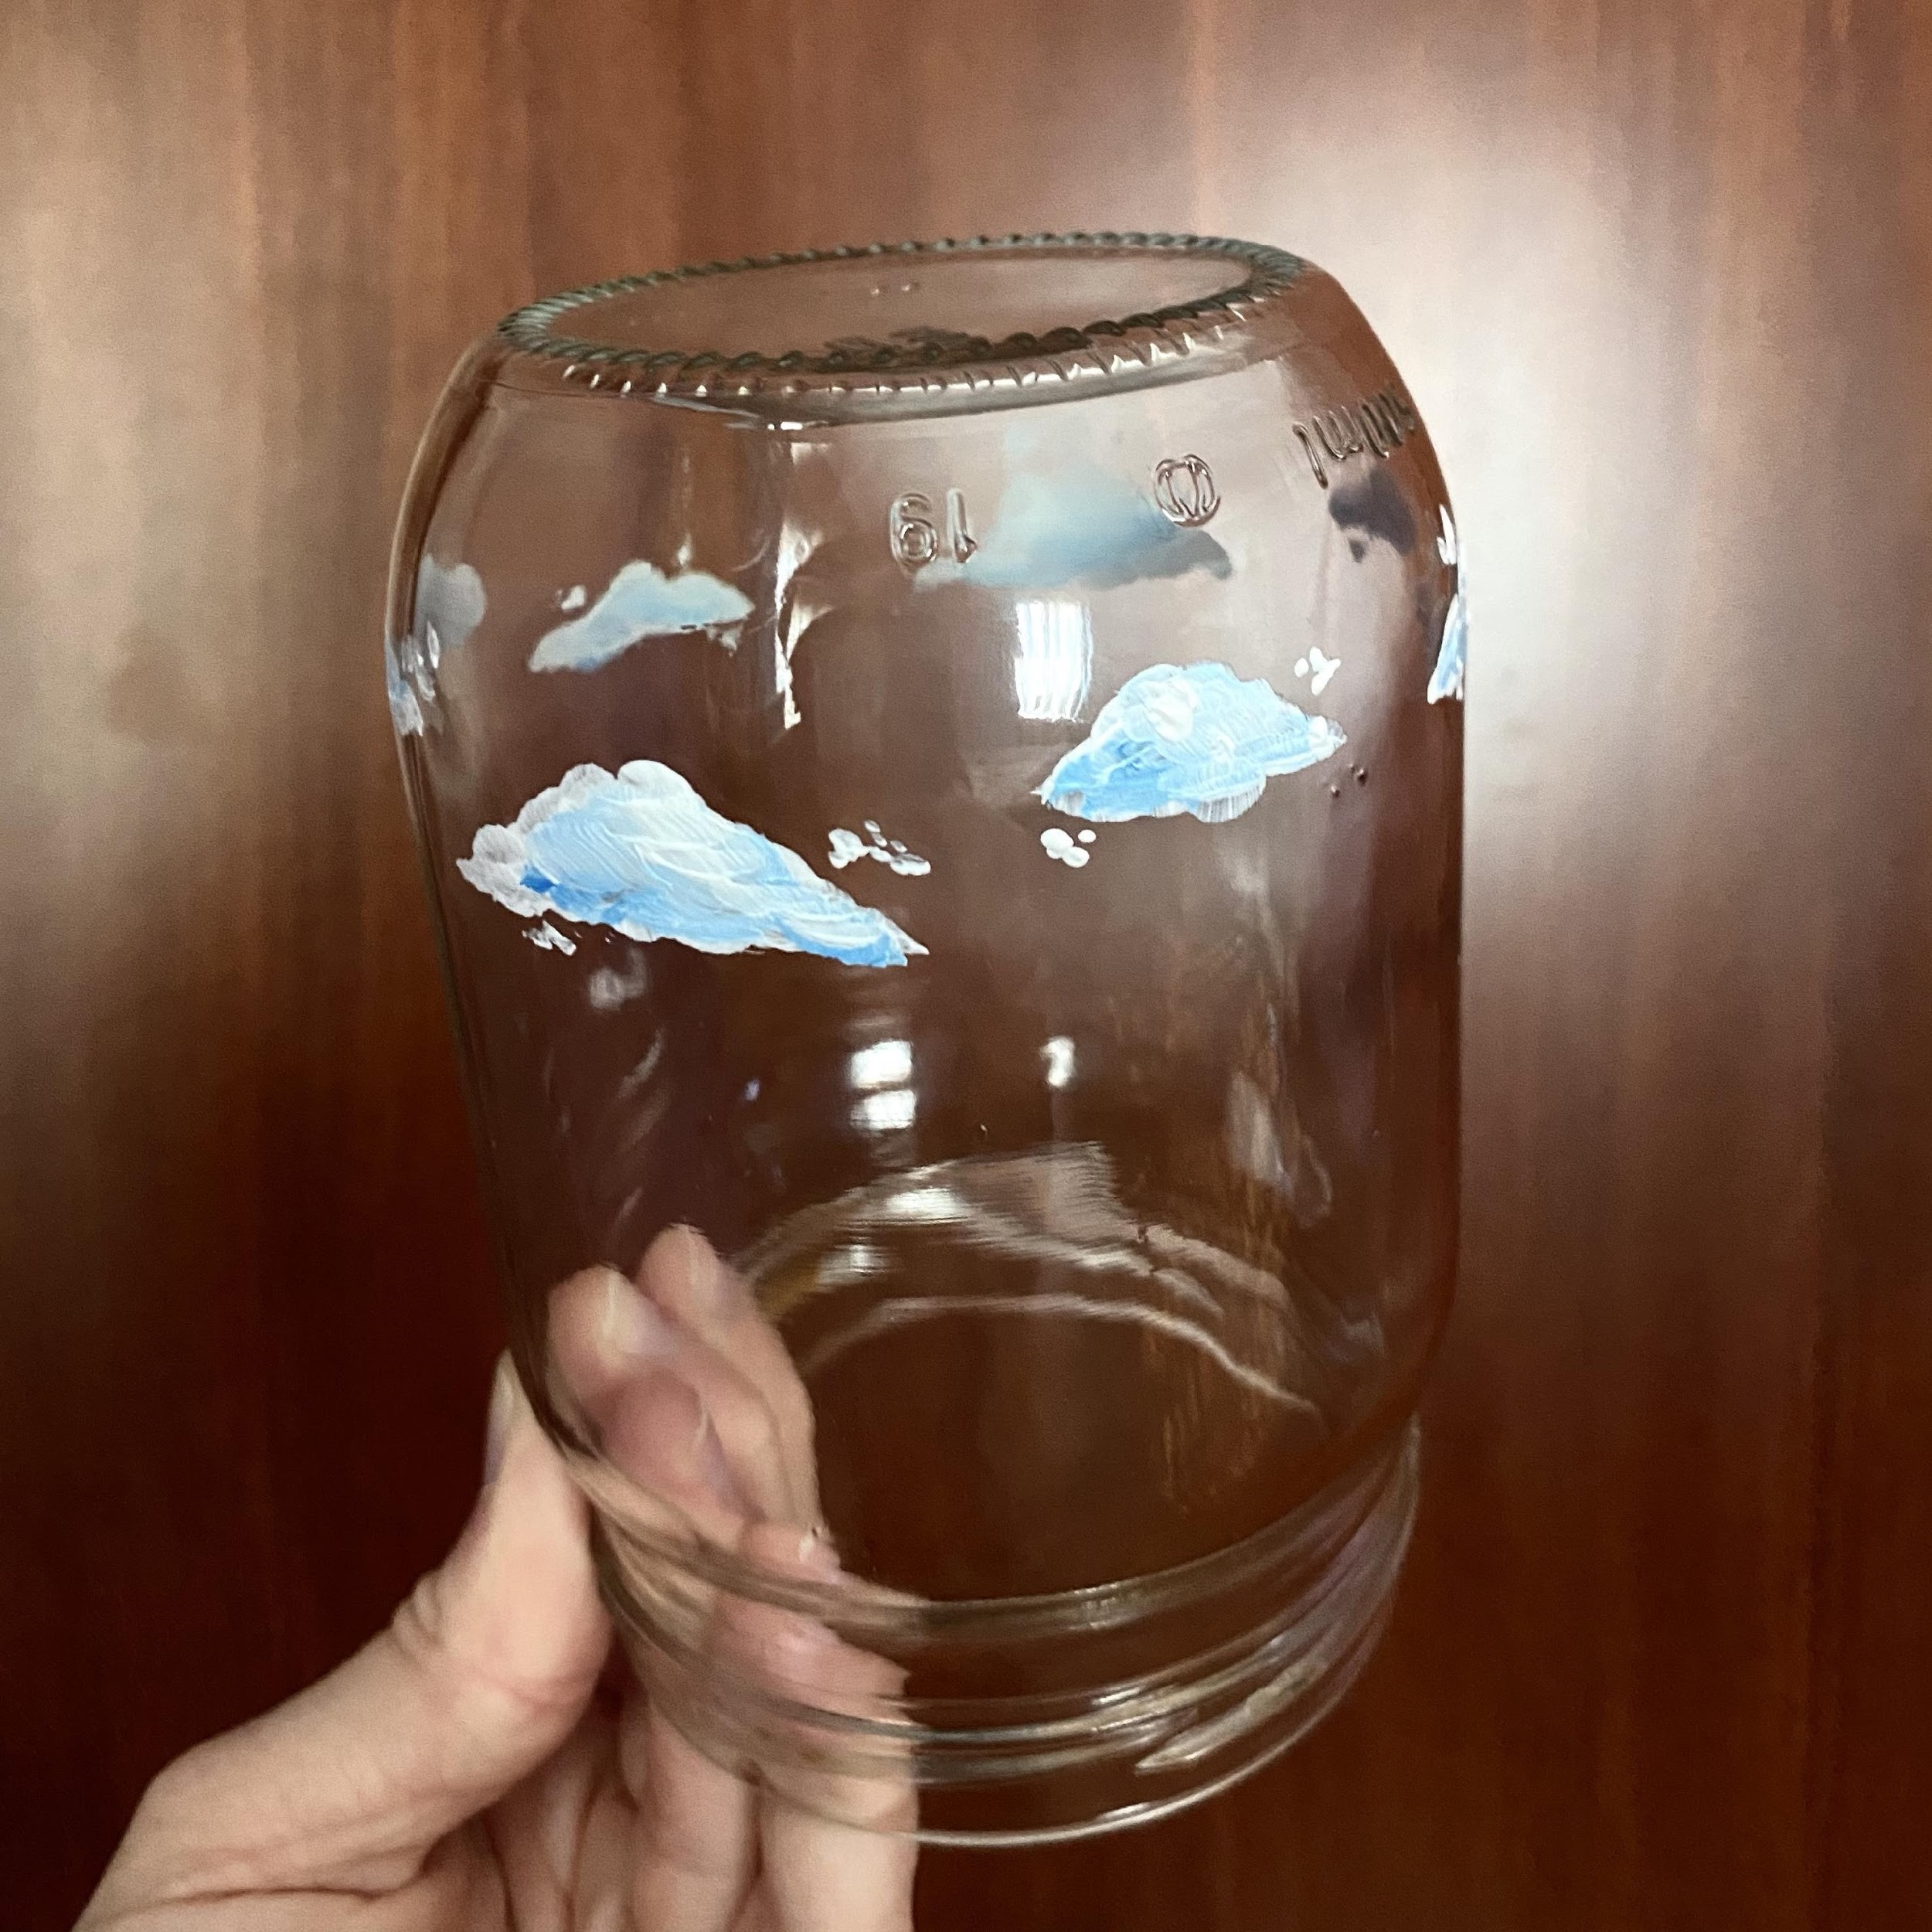 a person holding a glass jar with clouds painted on